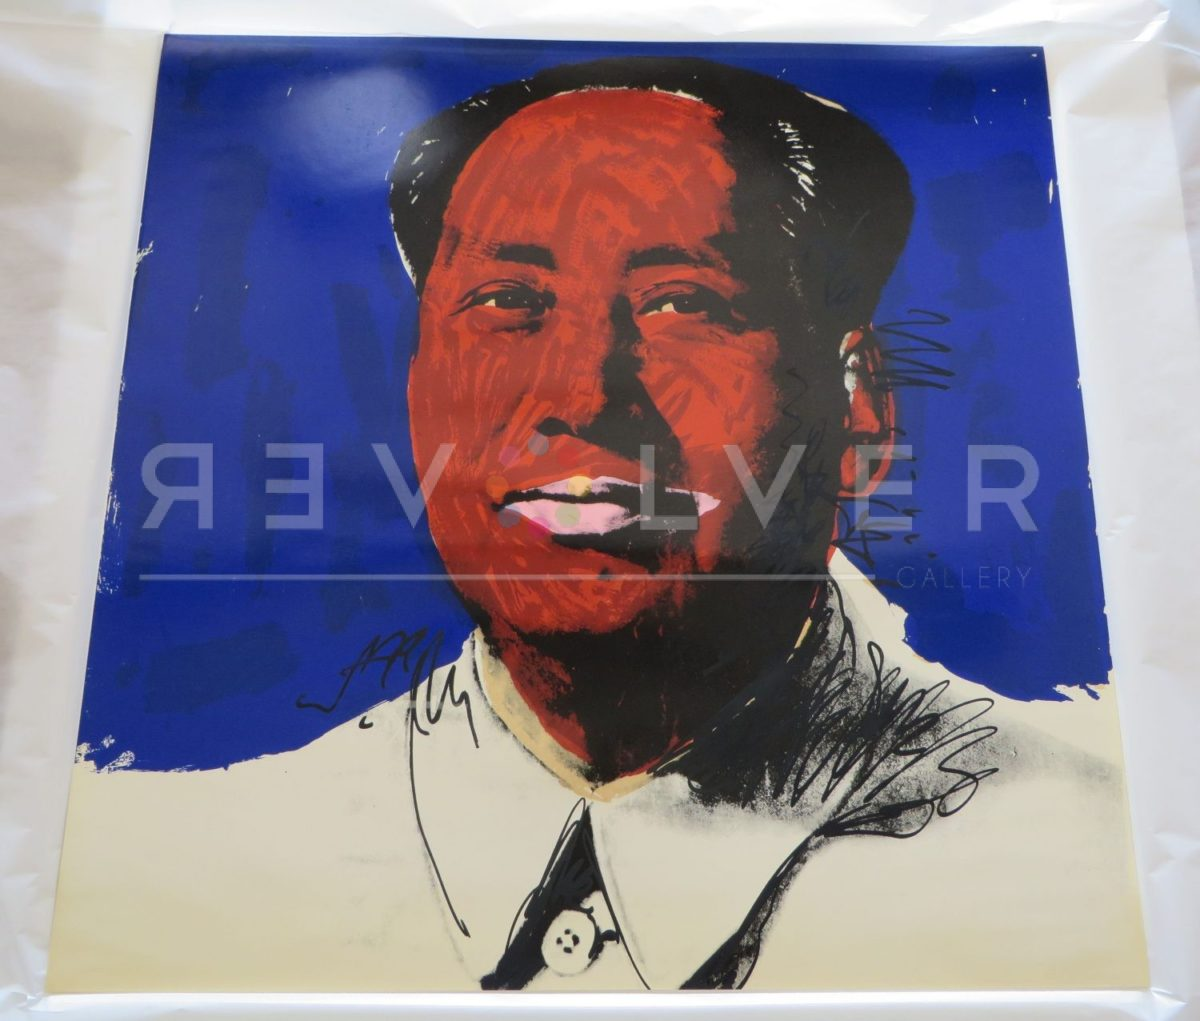 Andy Warhol Mao 98 screenprint out of frame laying on a table.